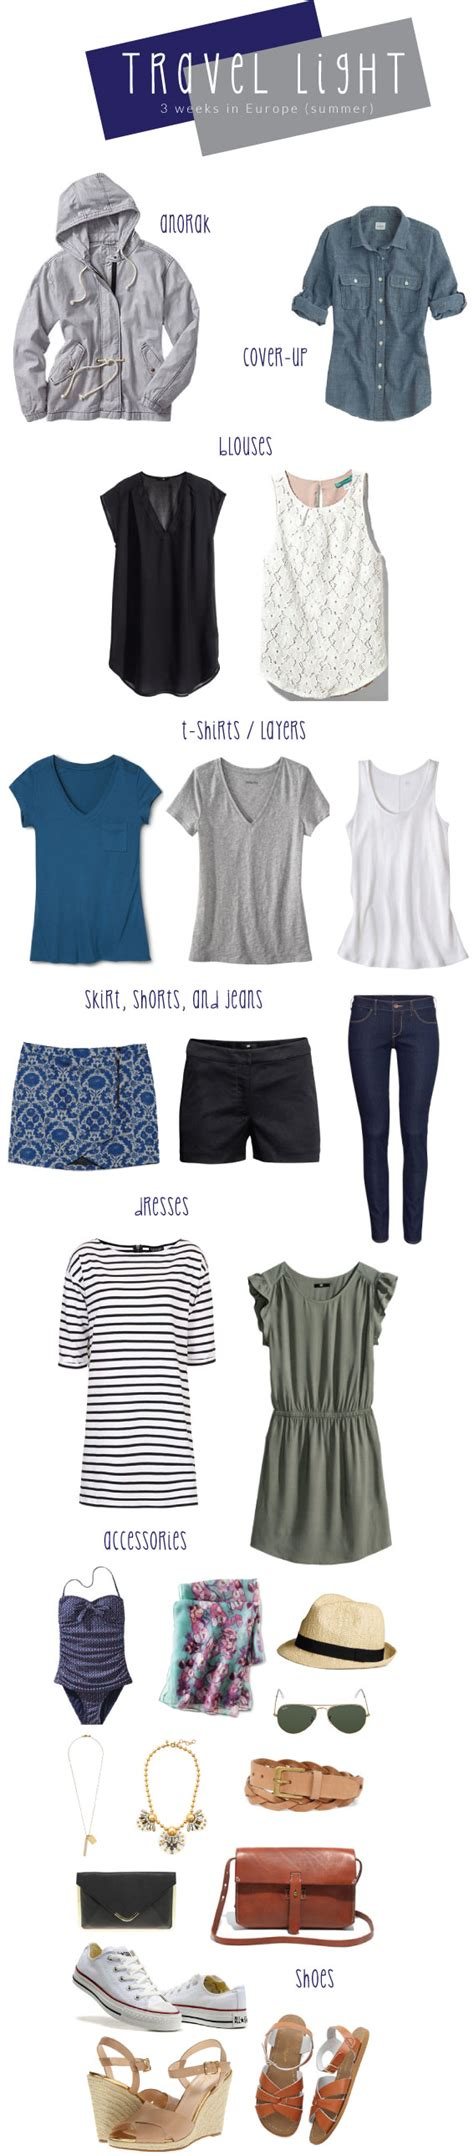 packing light for travel travel clothes and packing on pinterest travel wardrobe